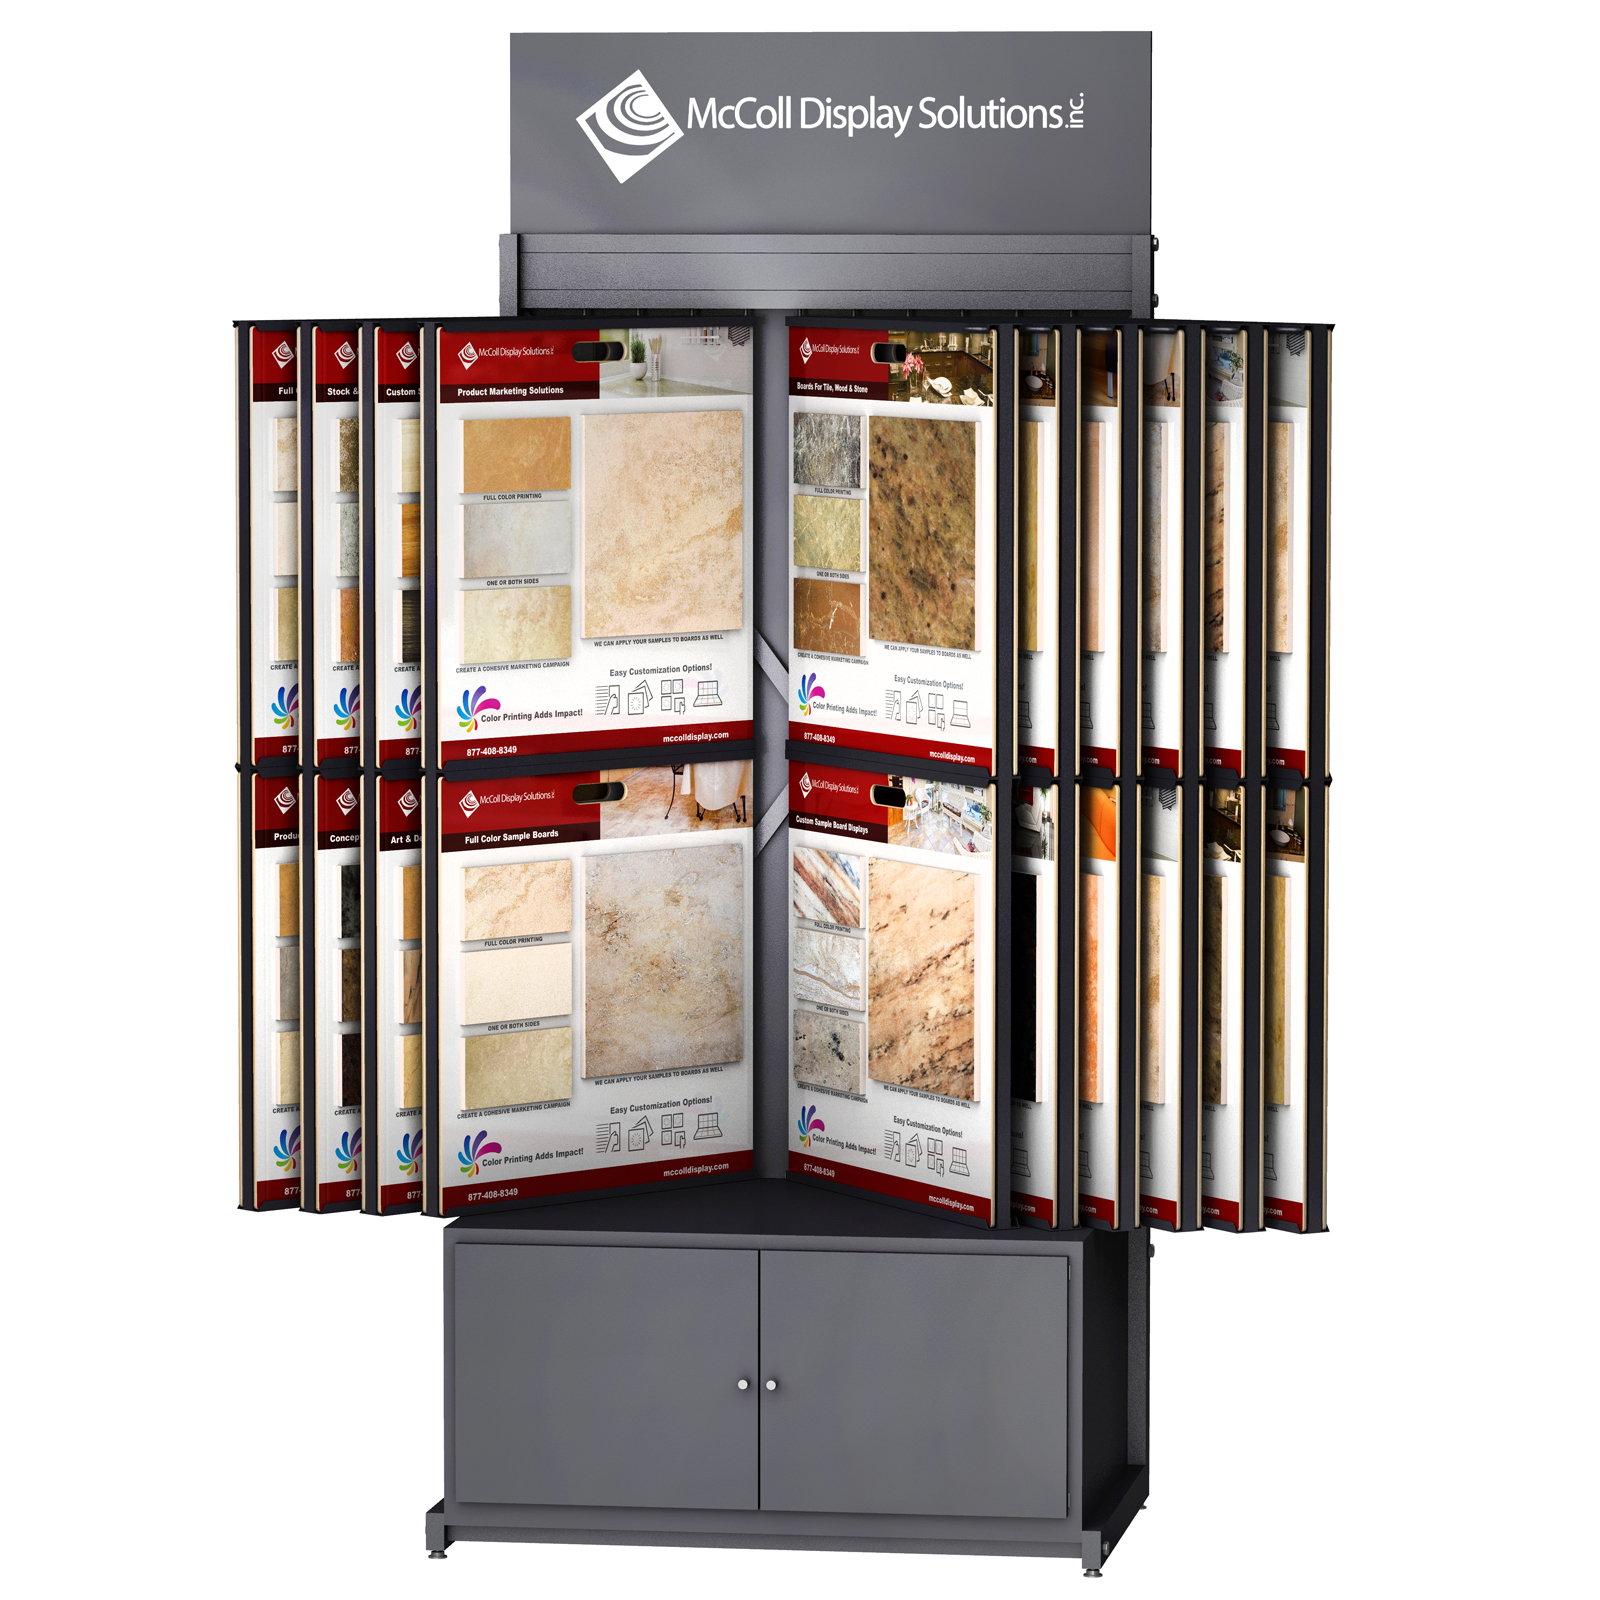 CD32 Wing Rack Channel System Tower with Storage Drawer Cabinet for Sample Boards Holds Tile Stone Marble Hardwood Flooring